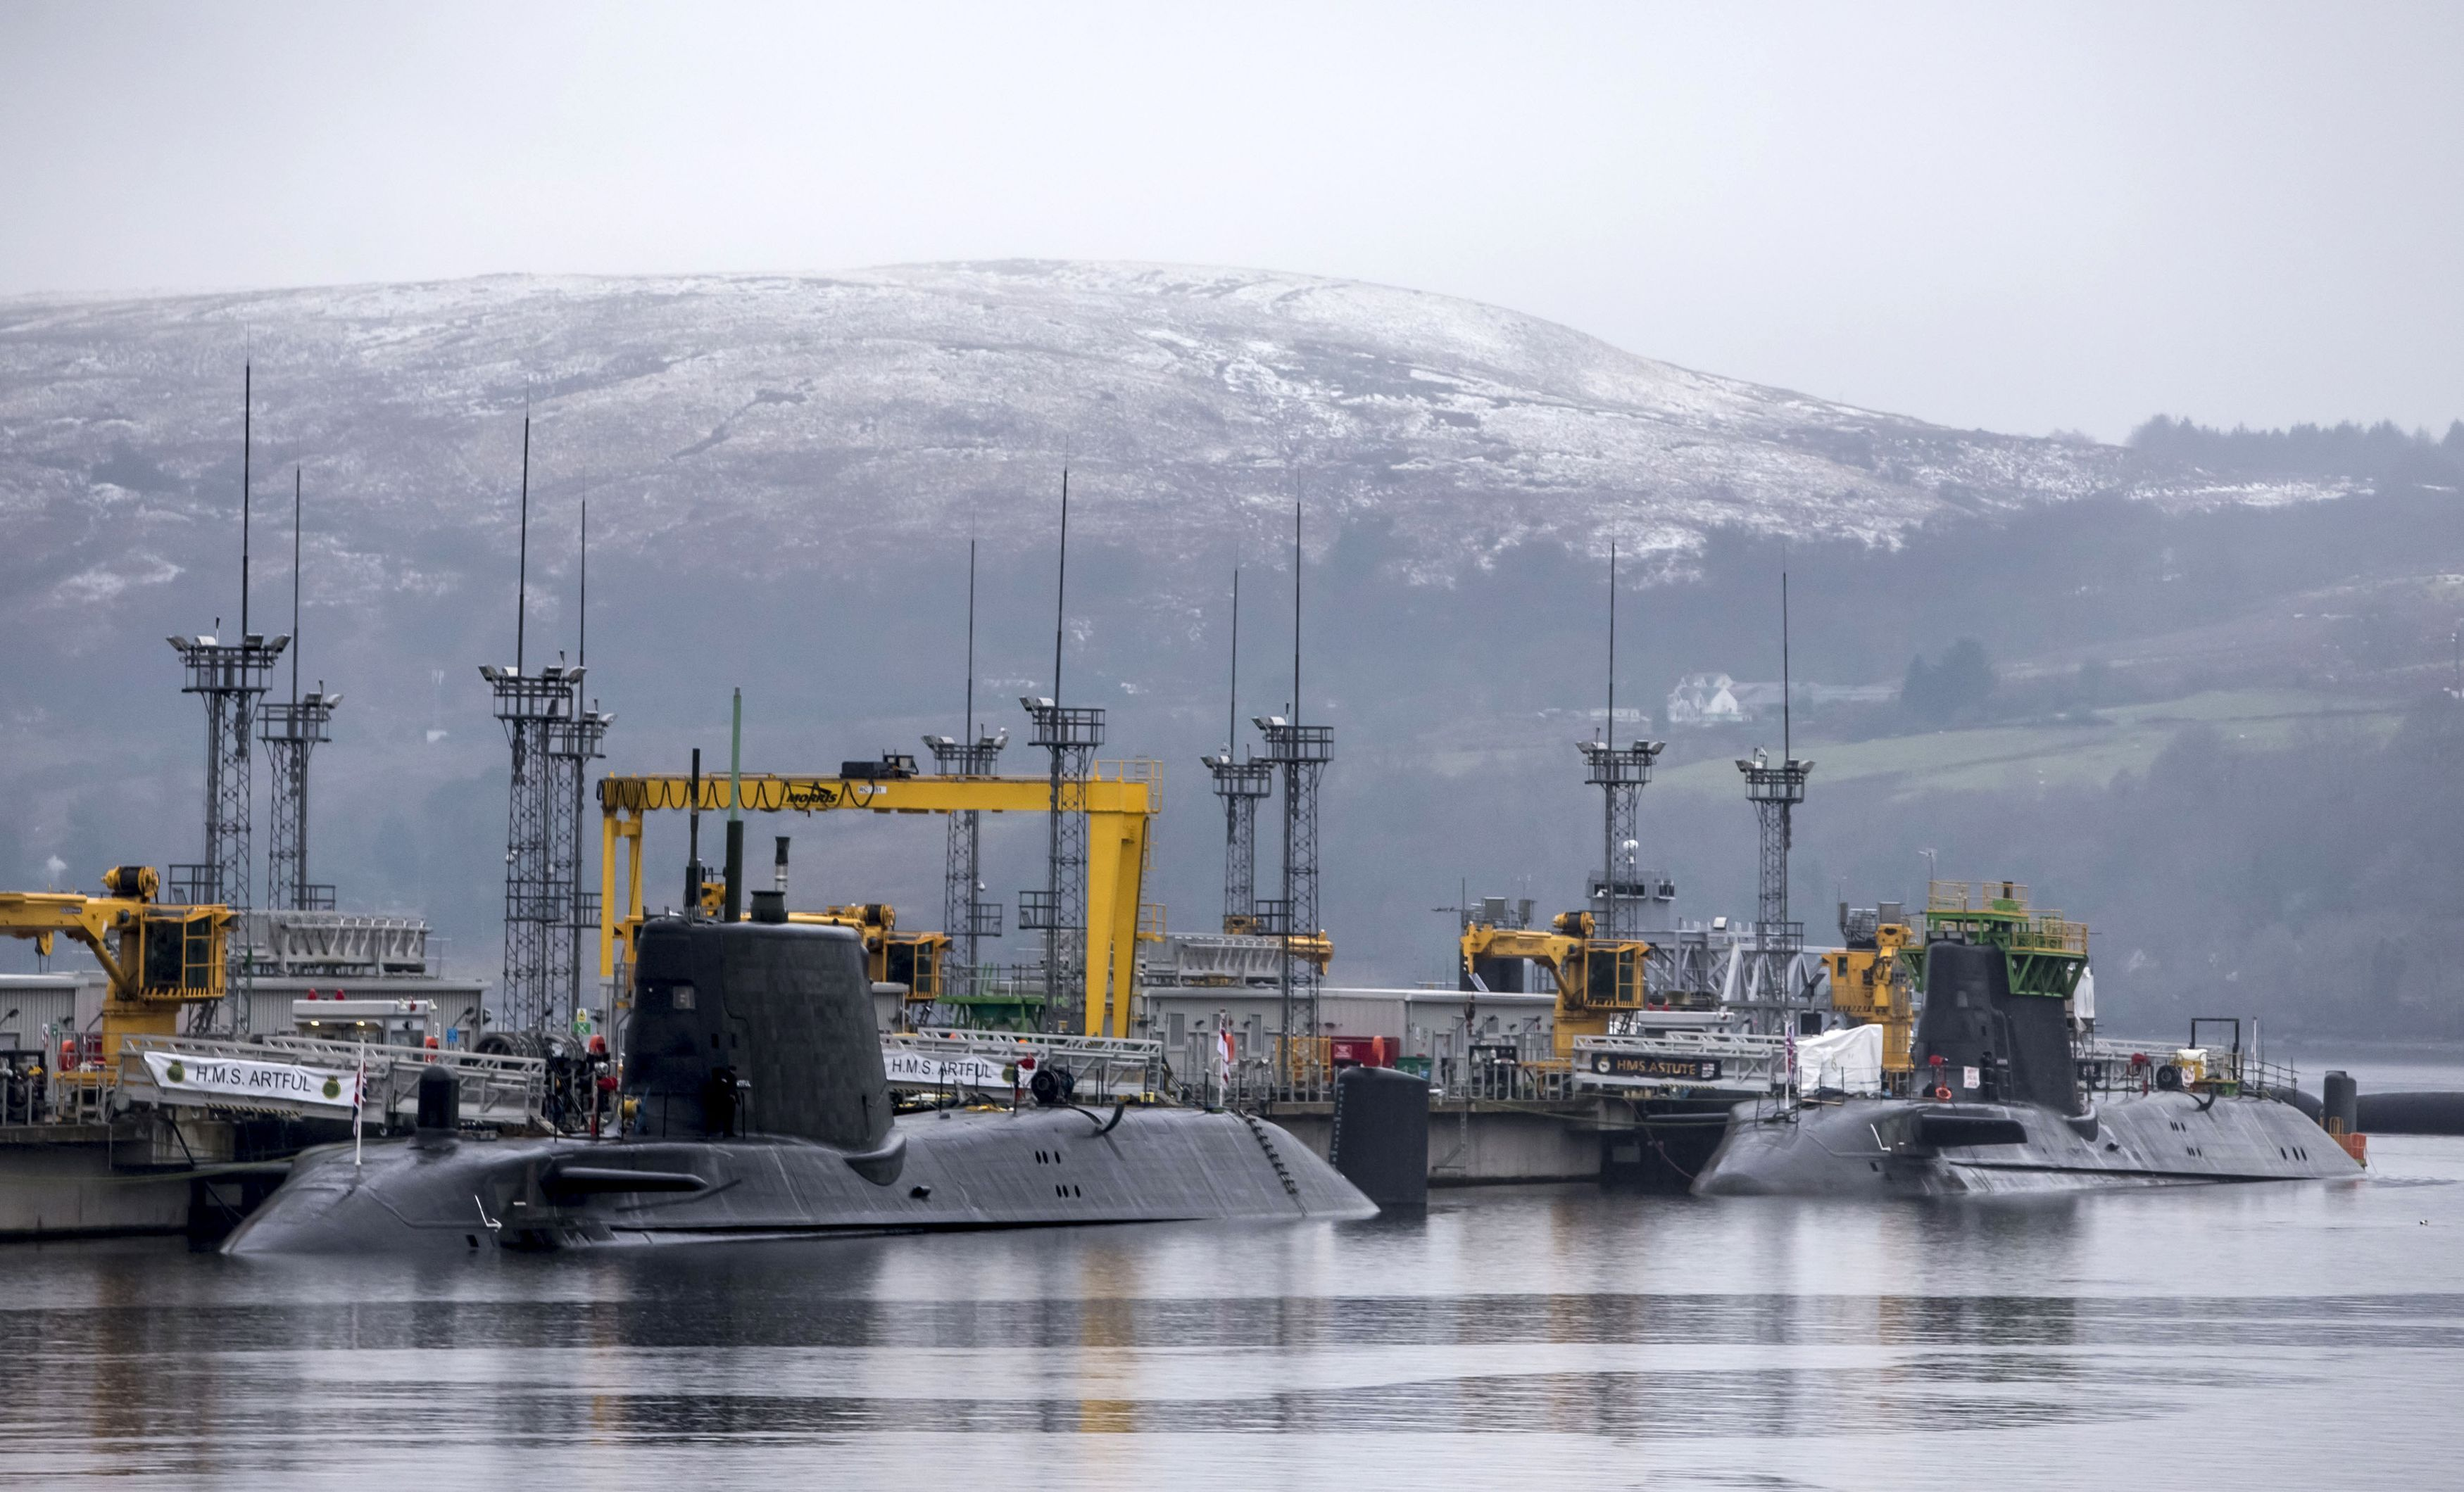 Astute-class submarines HMS Artful (left) and HMS Astute (right), at HM Naval Base Clyde, also known as Faslane, ahead of a visit by Defence Secretary Michael Fallon.